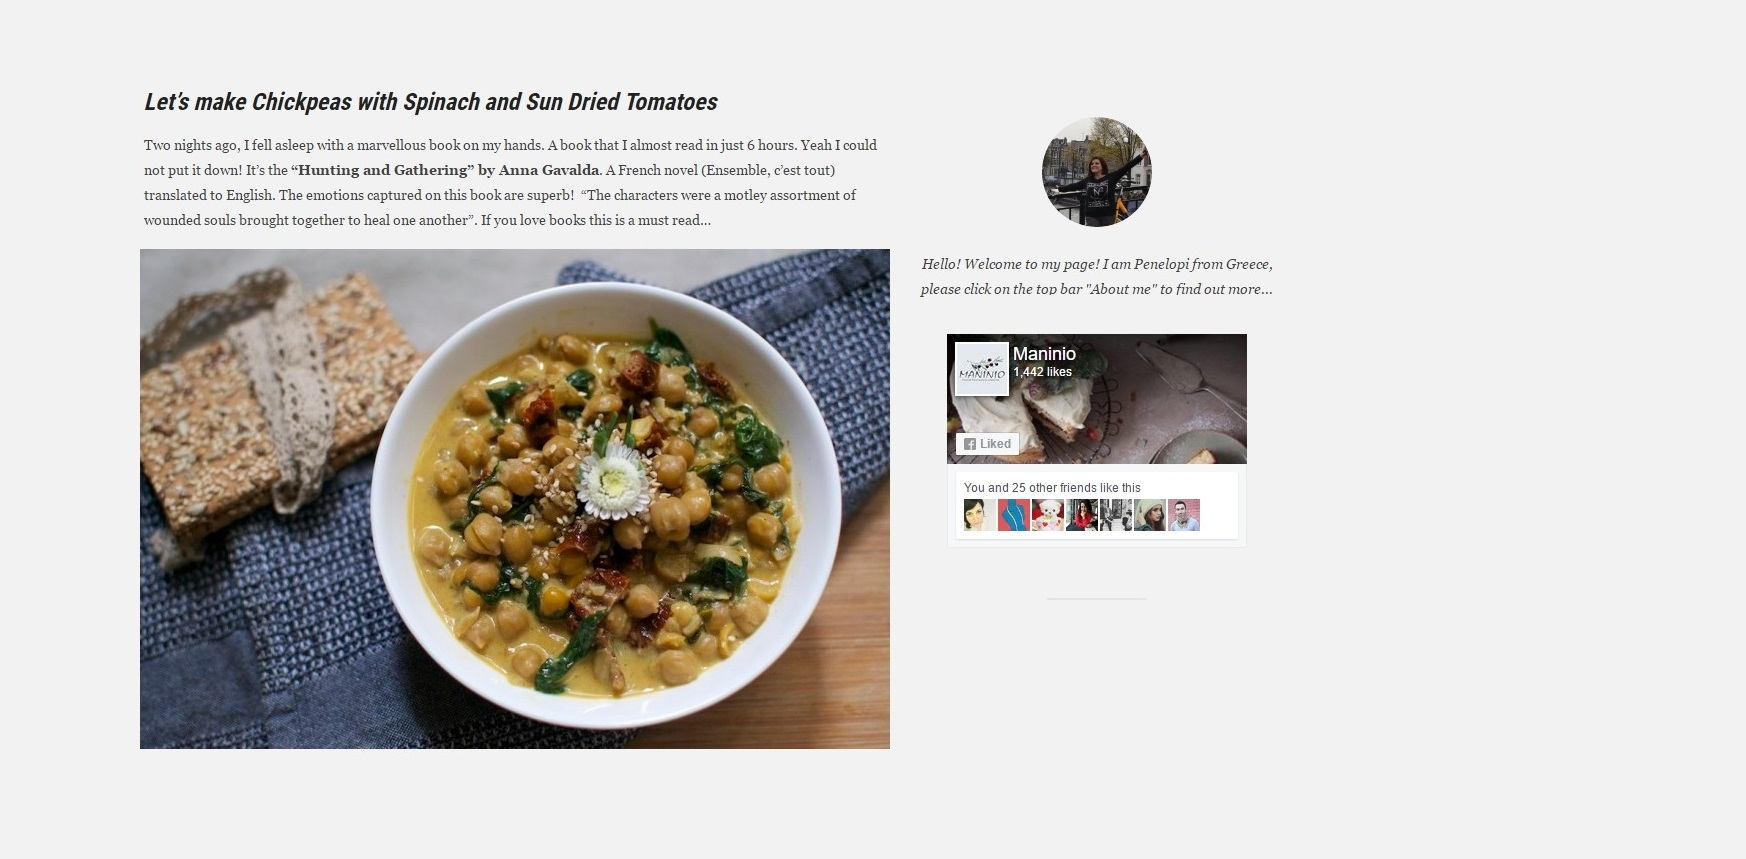 Let's make Chickpeas with Spinach and Sun Dried Tomatoes via Maninio.com